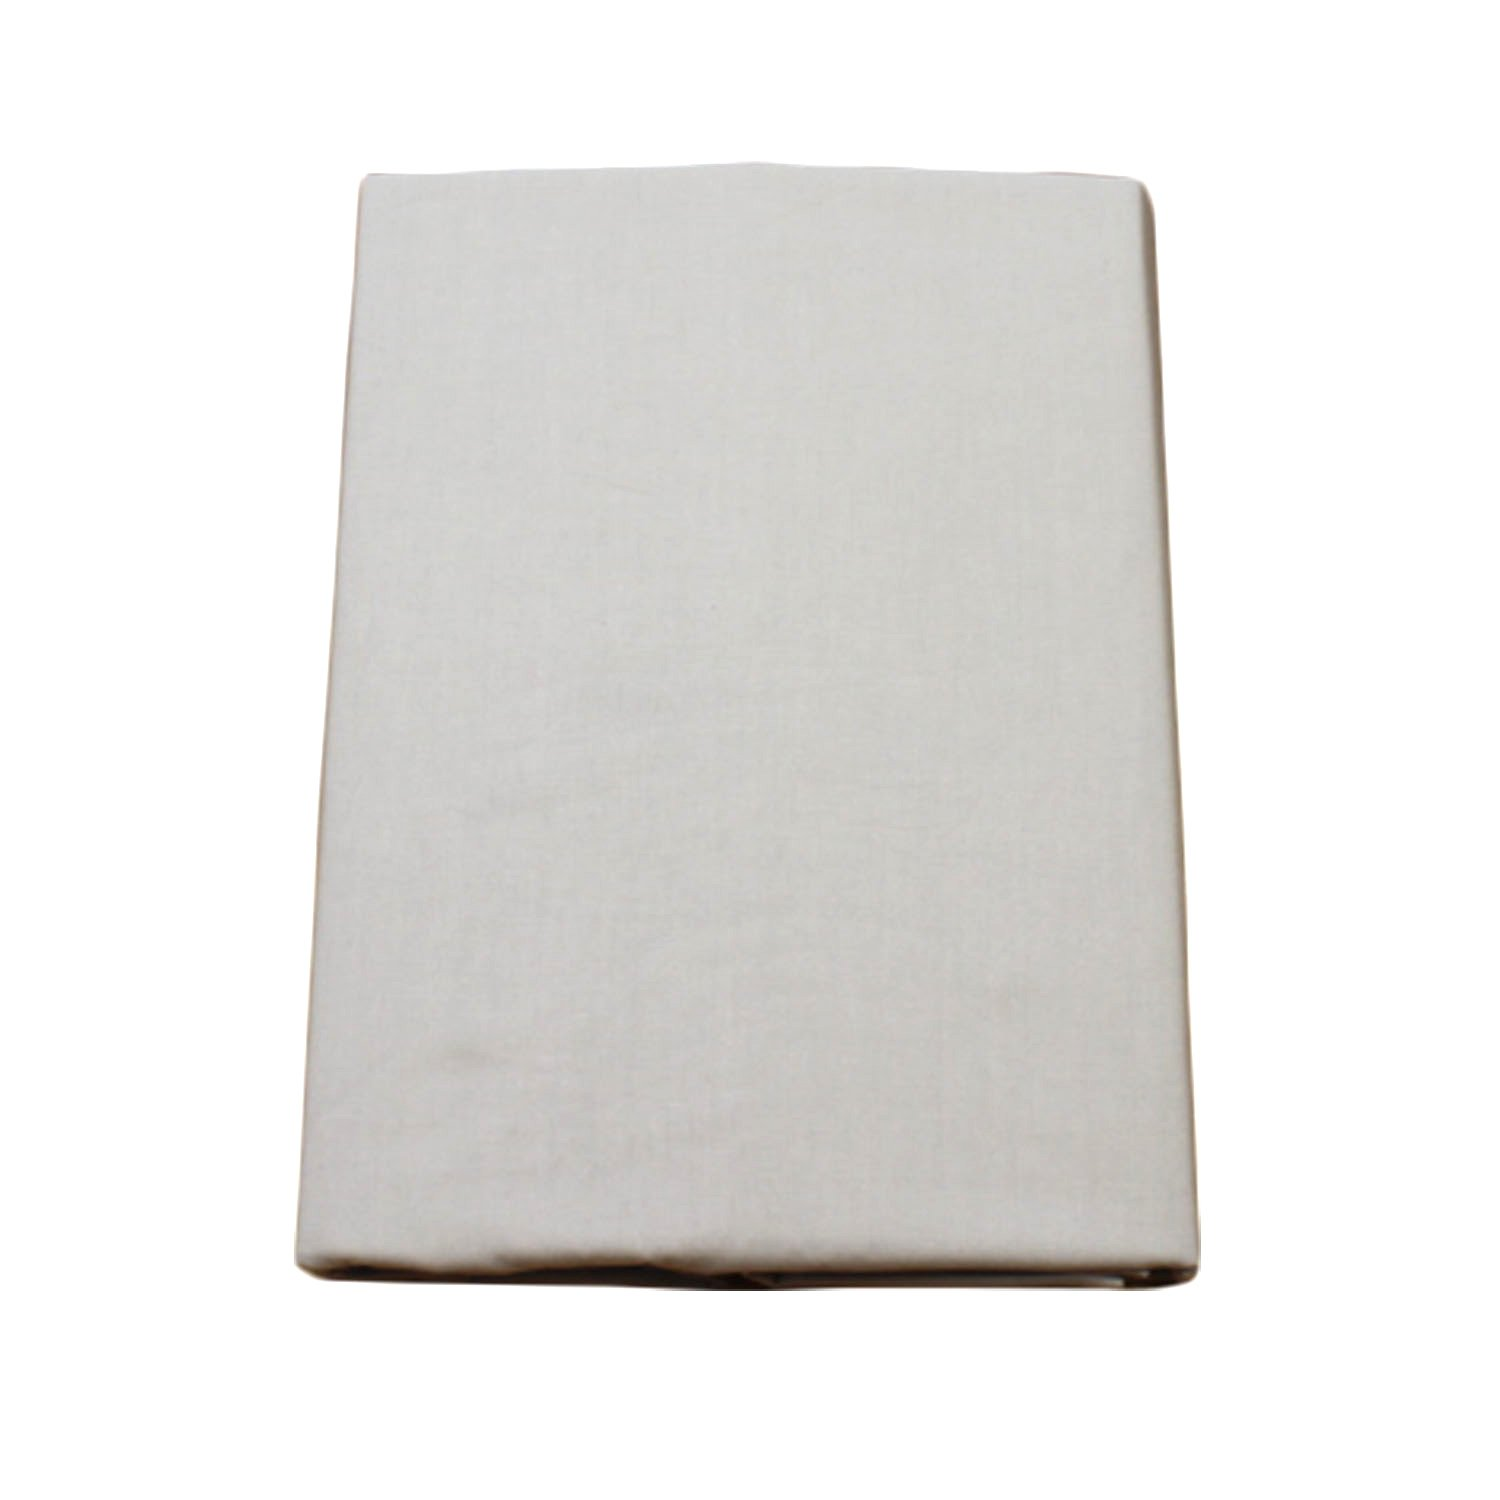 FULI 100% Cotton Cover for Traditional Japanese Floor Futon Mattress, Twin XL, Beige. Made in Japan FULI JAPAN